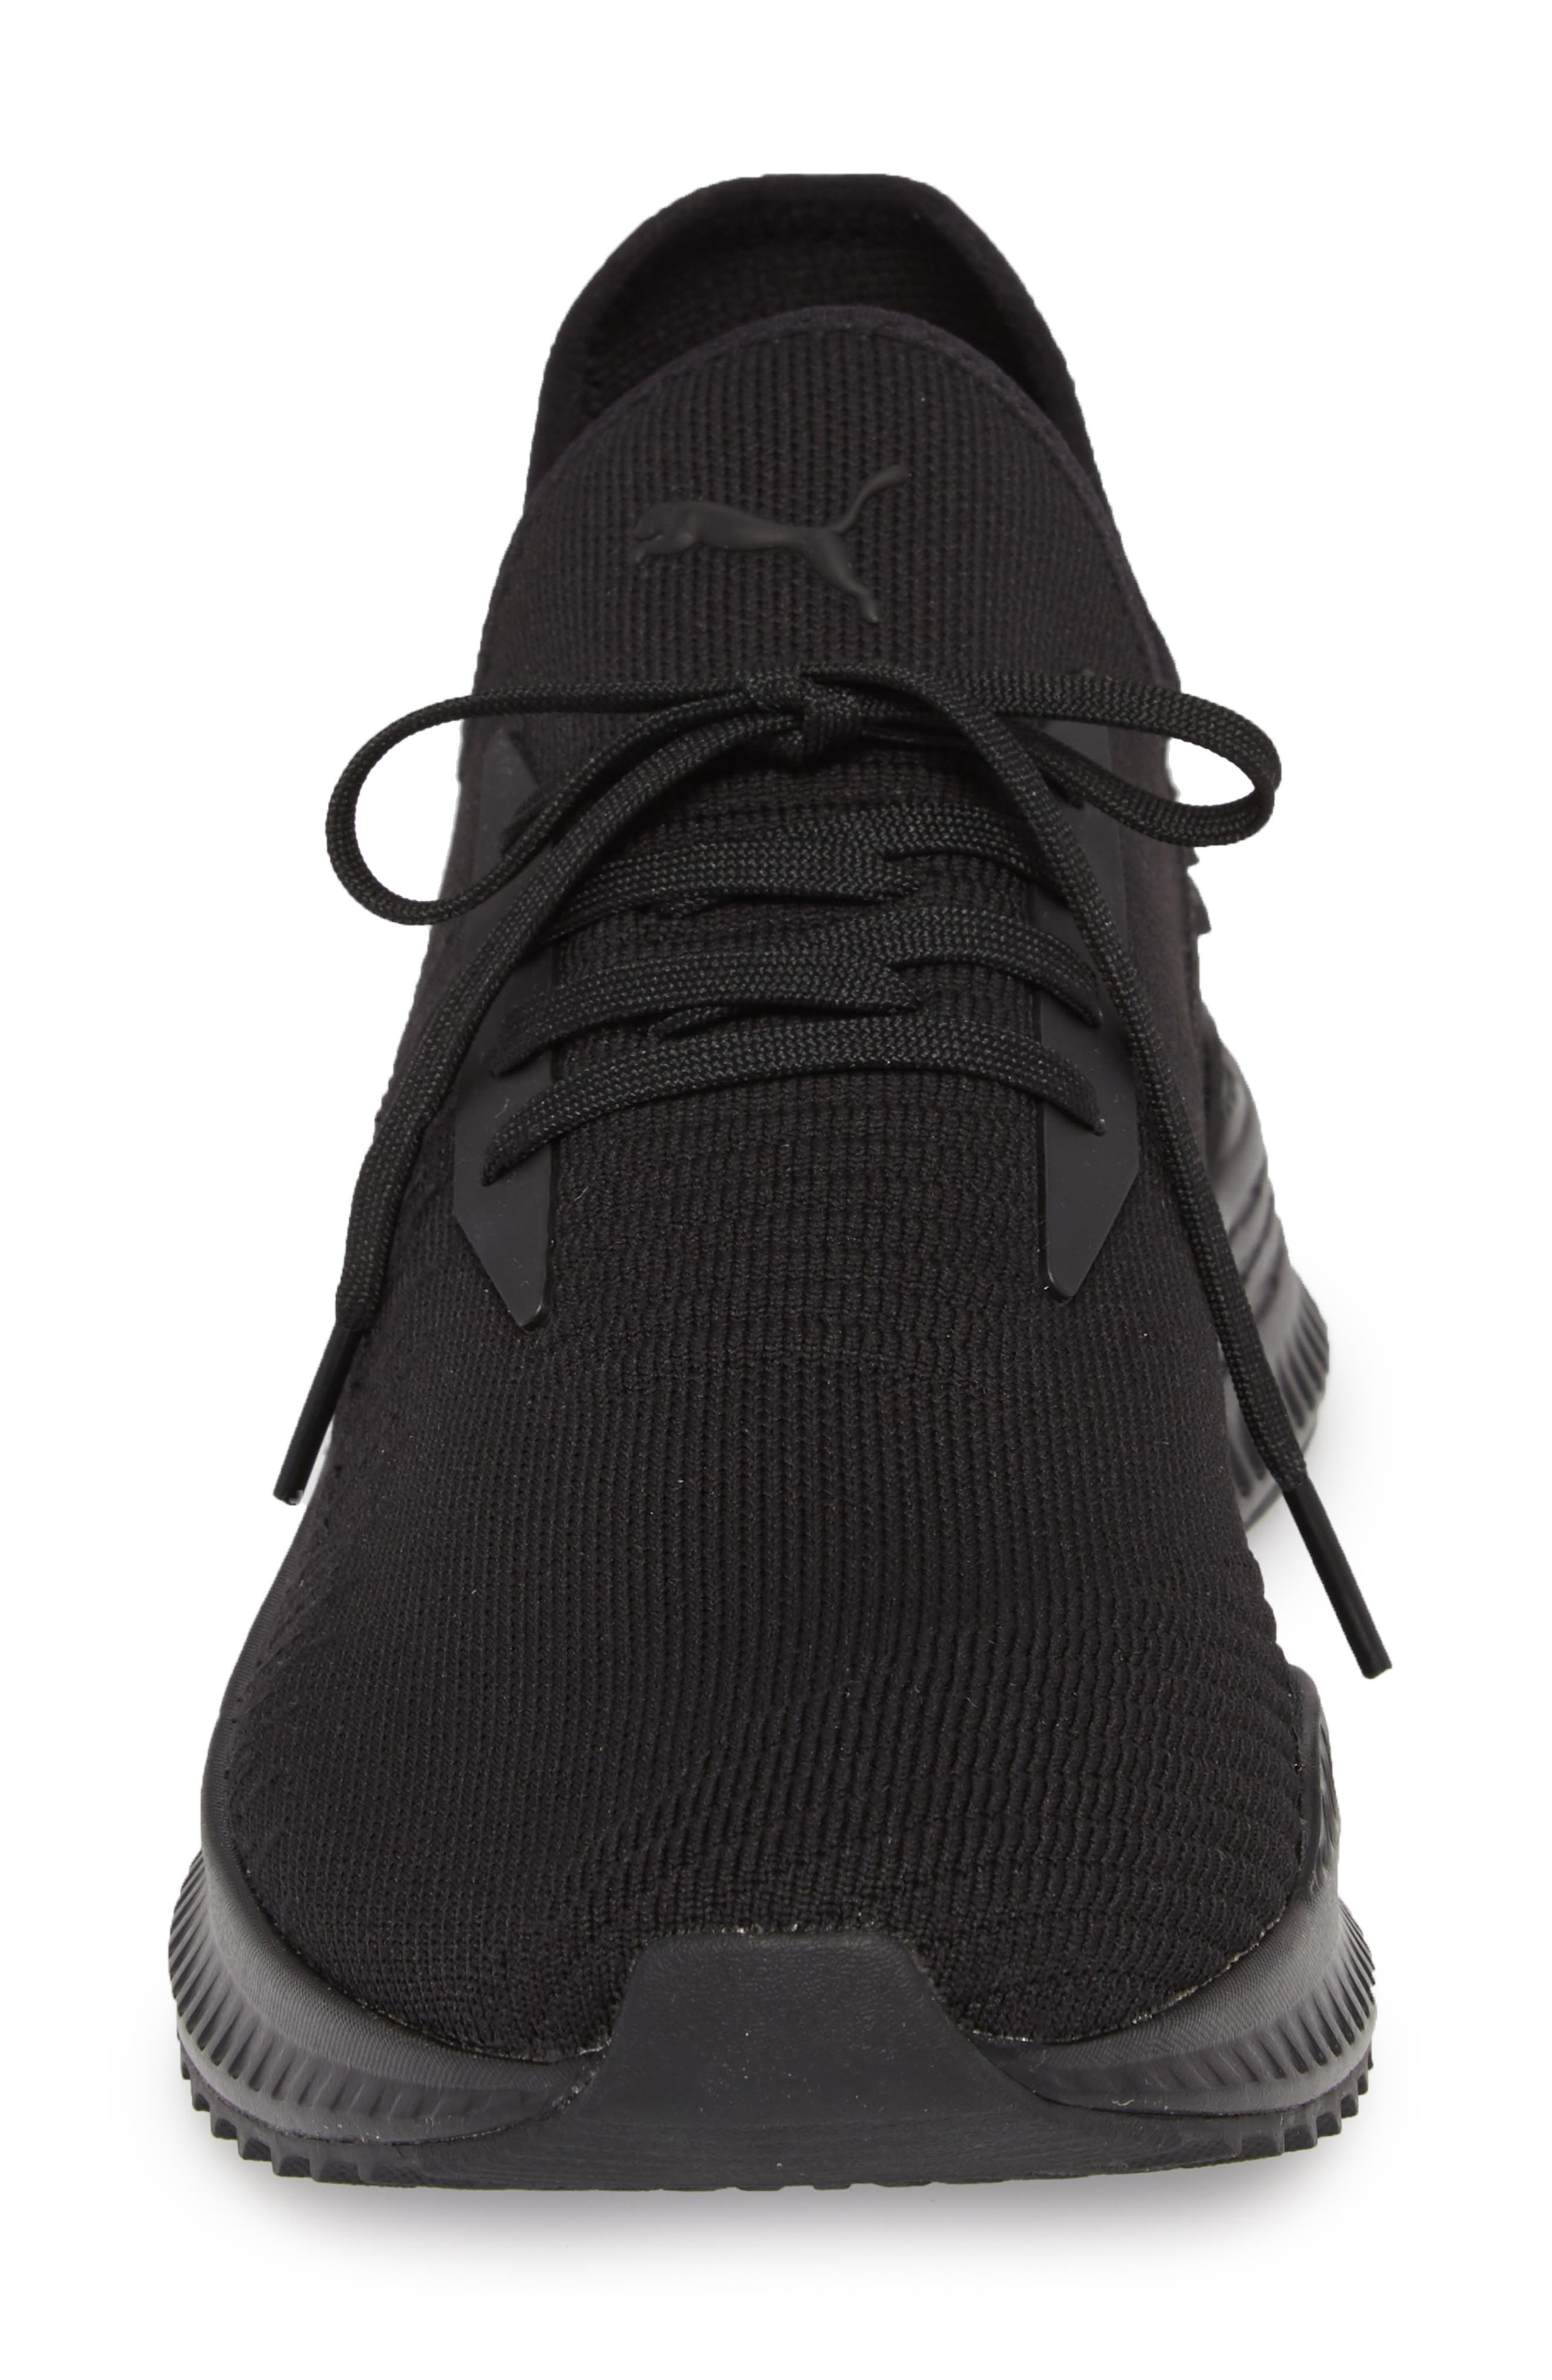 AVID evoKNIT Sneaker,                             Alternate thumbnail 4, color,                             Black/ Black